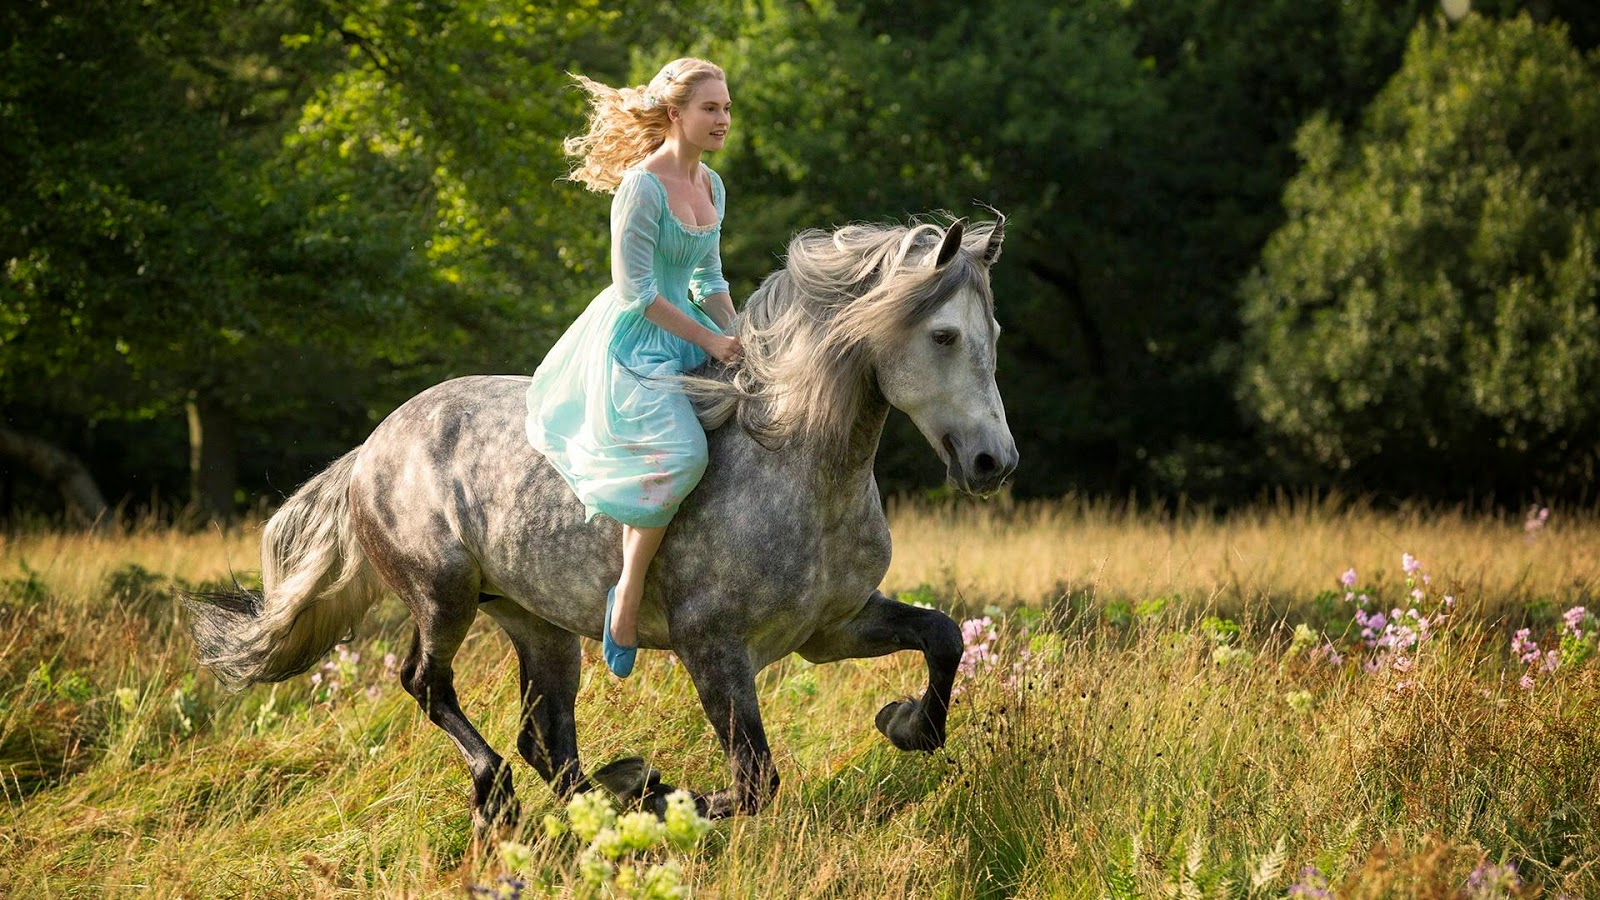 The fine art diner kindness courage cinderella 2015 this was the first image released by the studio for the film and its a fitting characterization of ella why horses symbolize the holy spirit buycottarizona Gallery